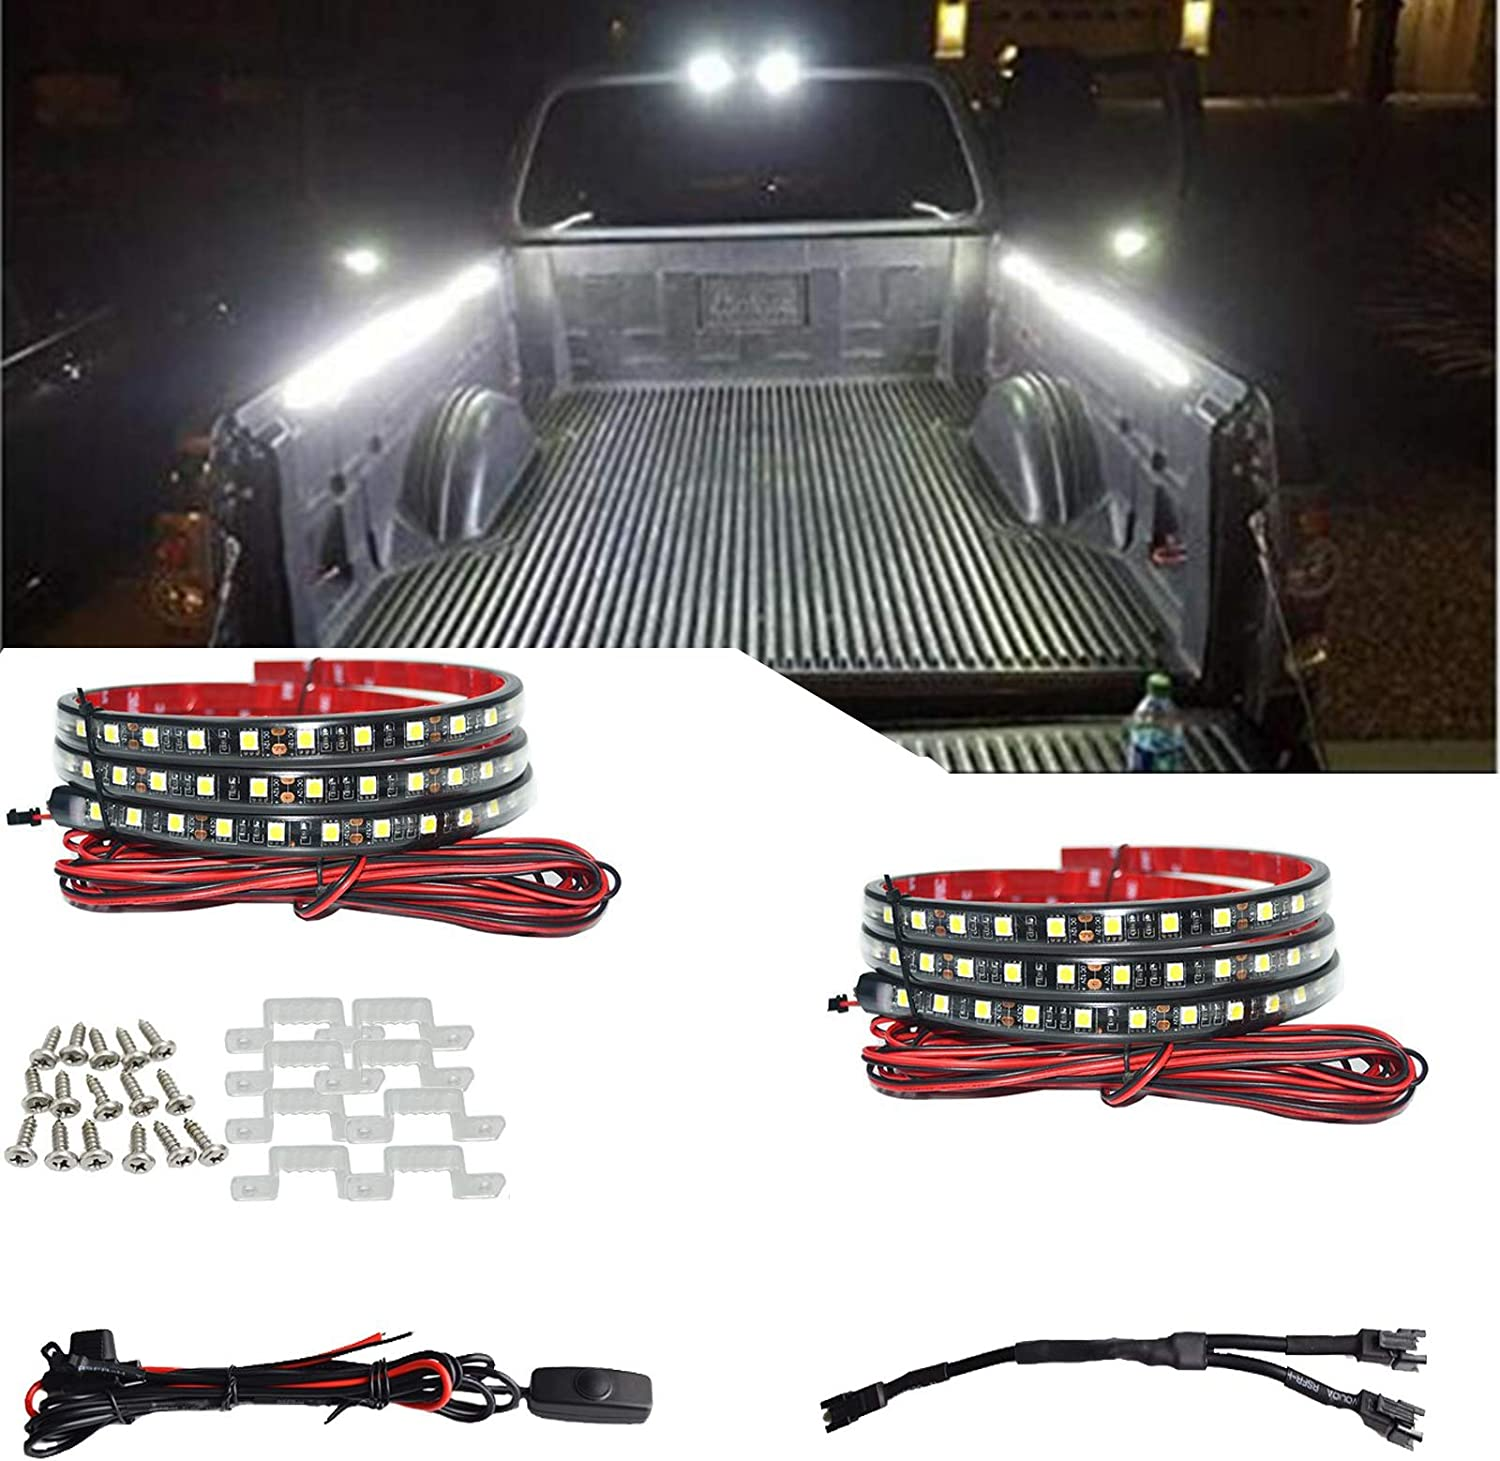 Nbdy Truck Bed Lighting Battery Powered